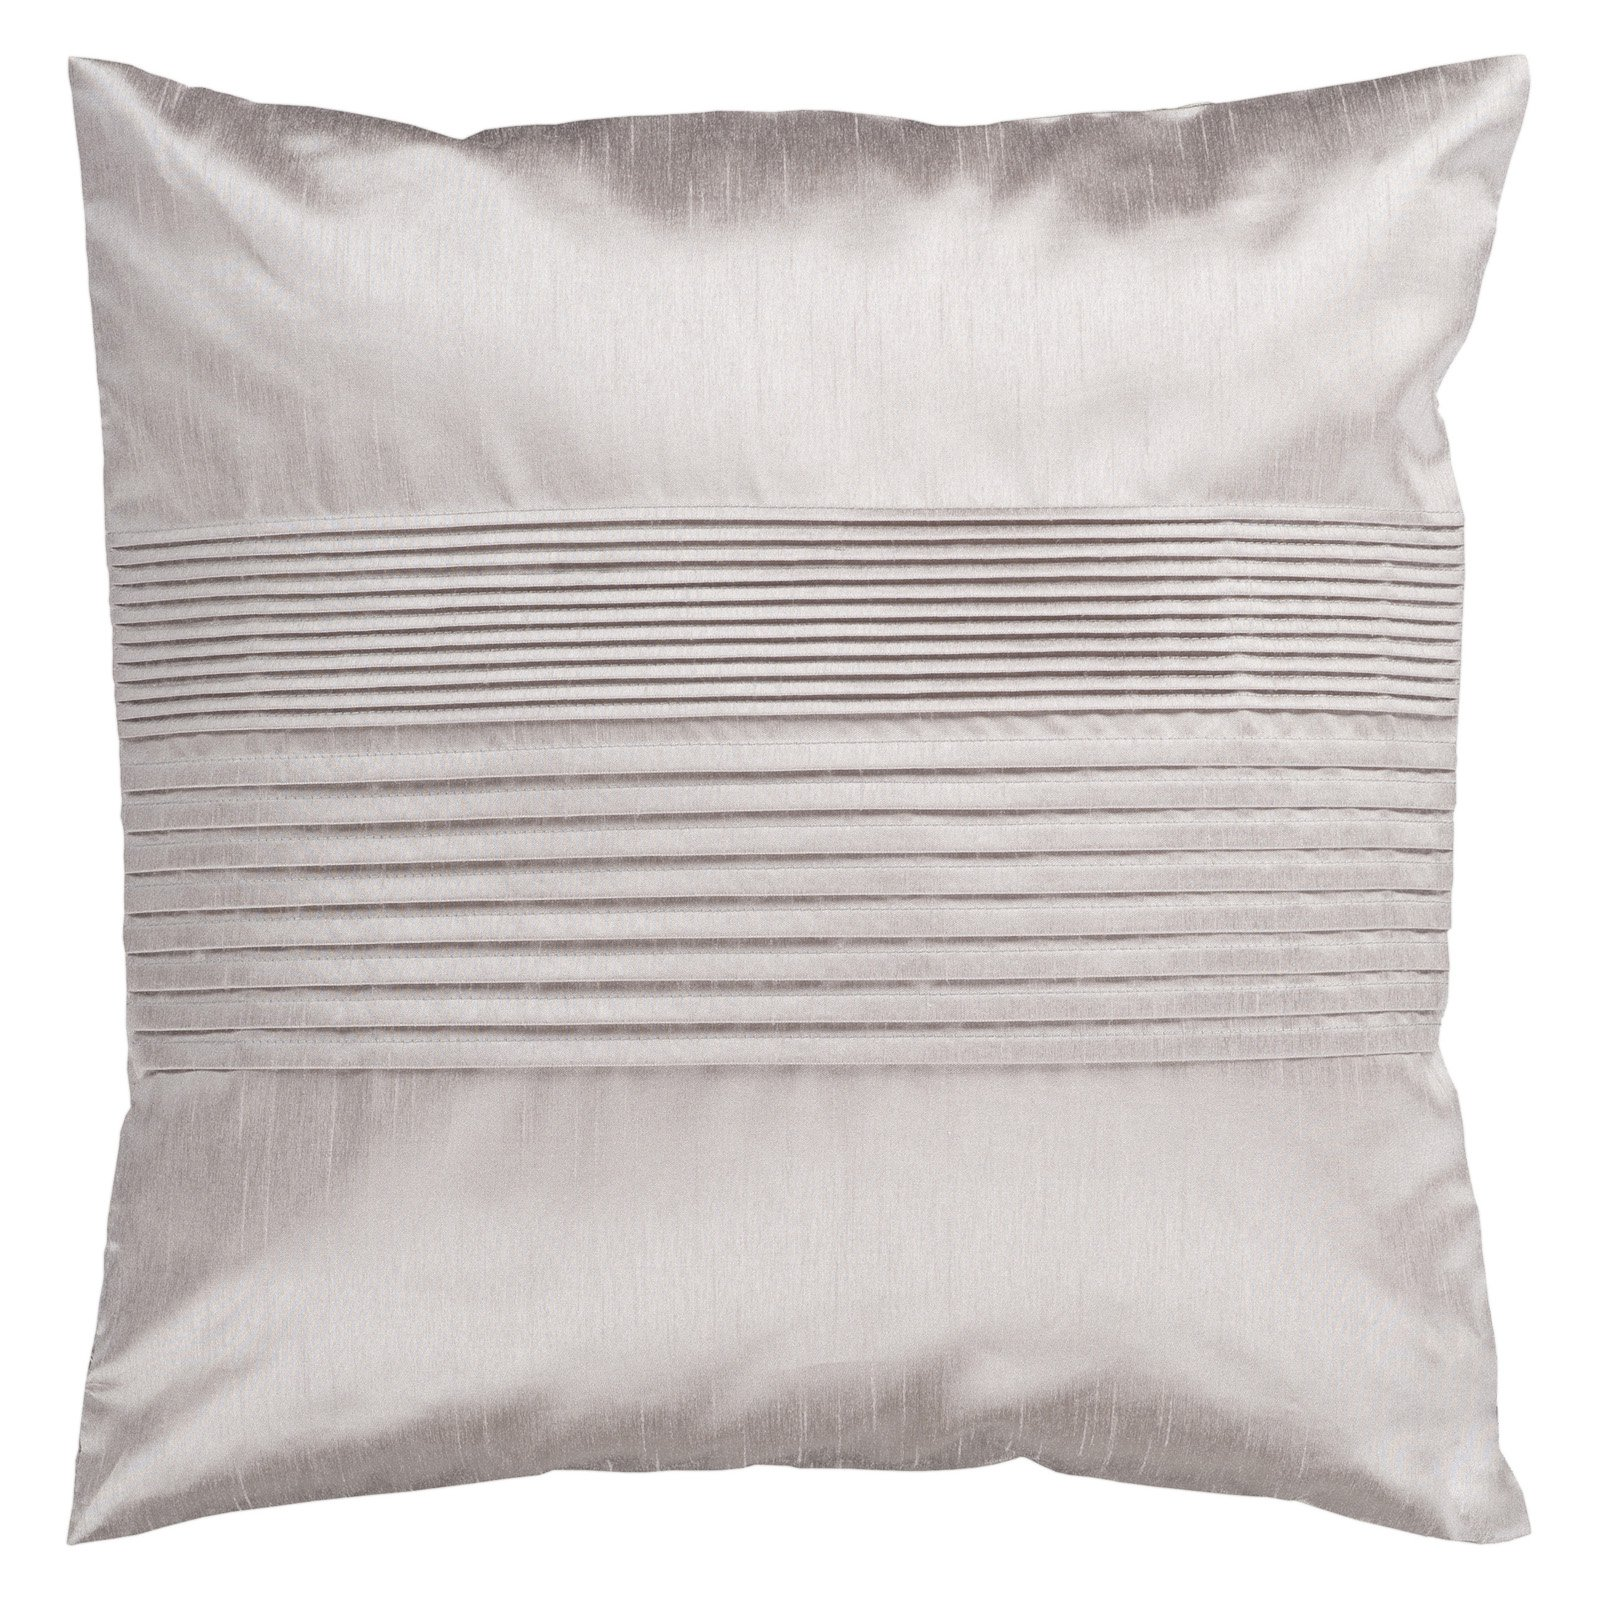 Surya Tracks Decorative Pillow - Silver